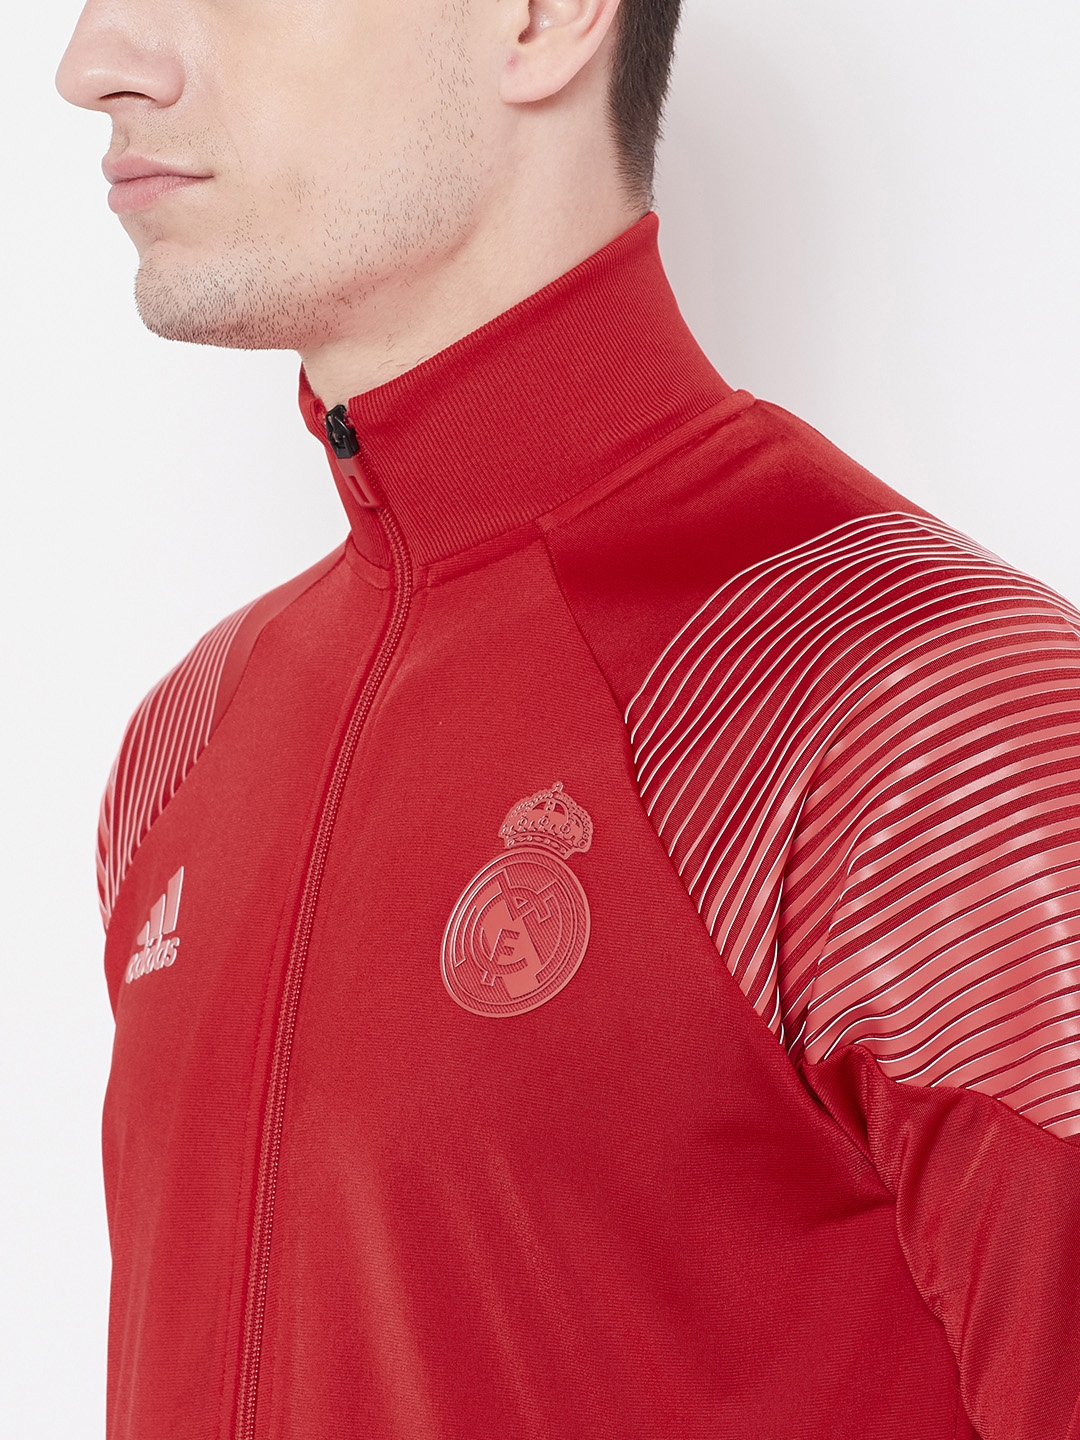 9221abffd901 Buy ADIDAS Men Red Real Madrid Icon Solid Lightweight Sporty Jacket ...